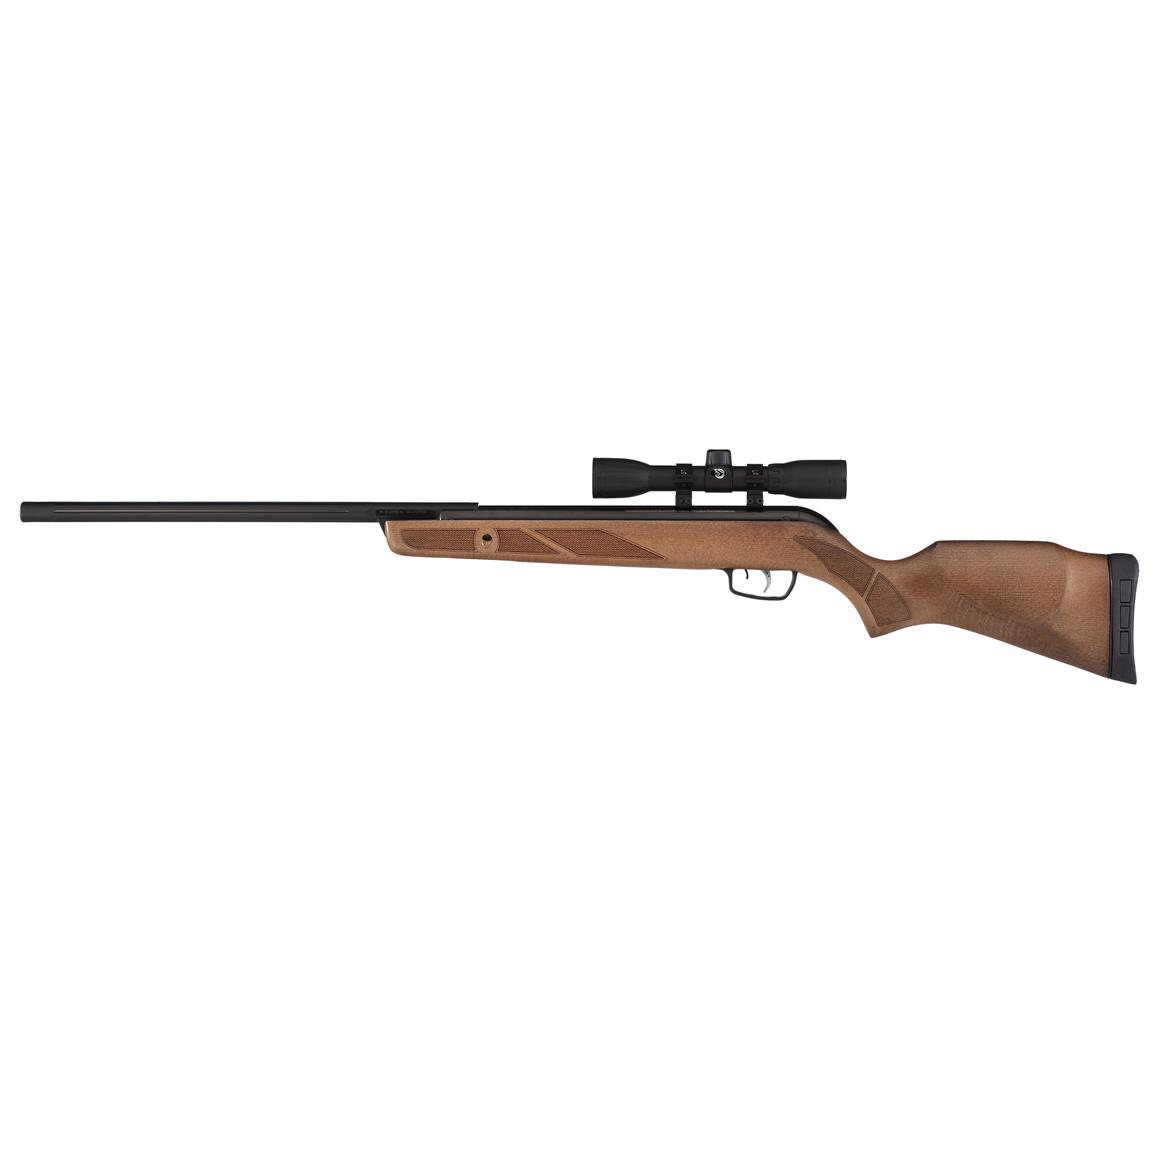 Big Cat Hunter .177 caliber Air Rifle with 4x32mm Scope